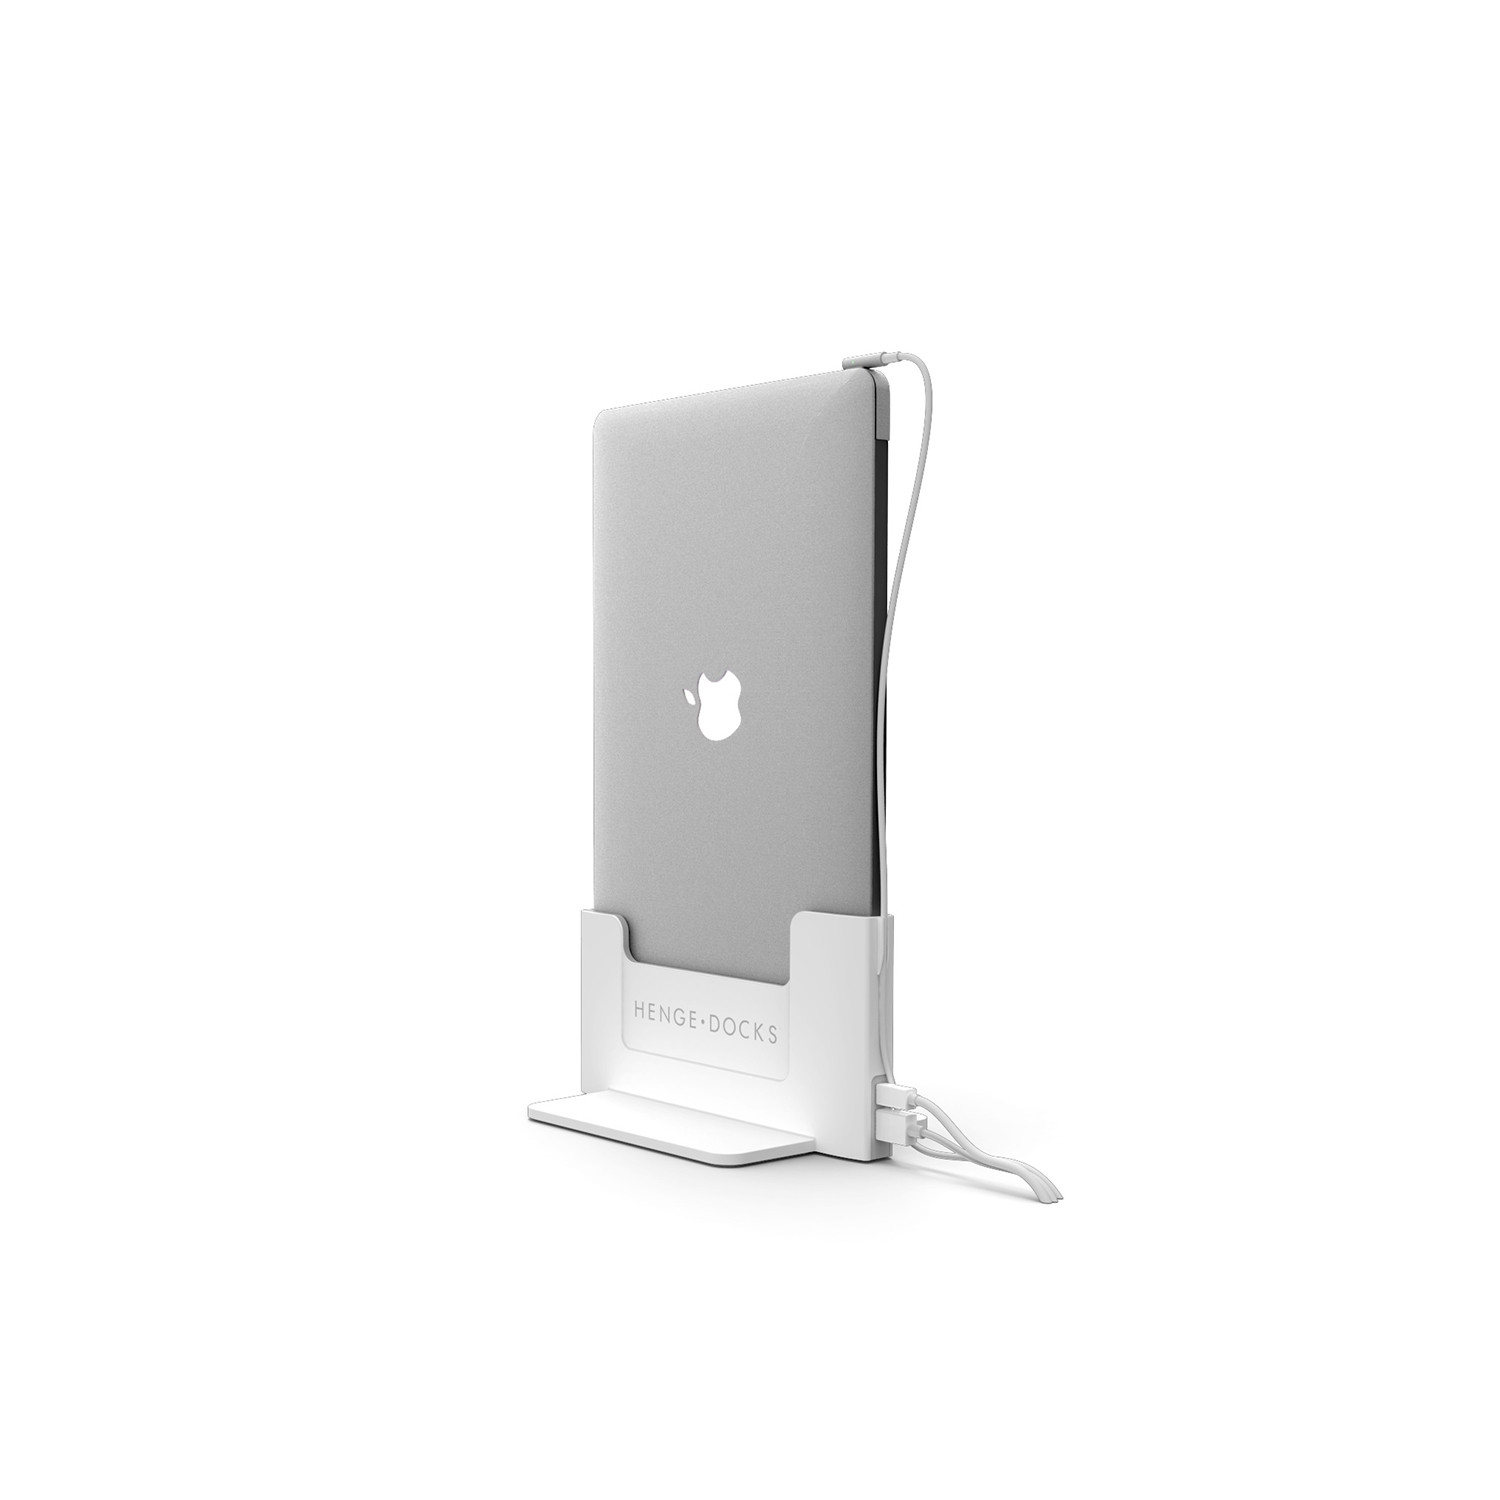 vertical docking station 11 macbook air henge docks. Black Bedroom Furniture Sets. Home Design Ideas